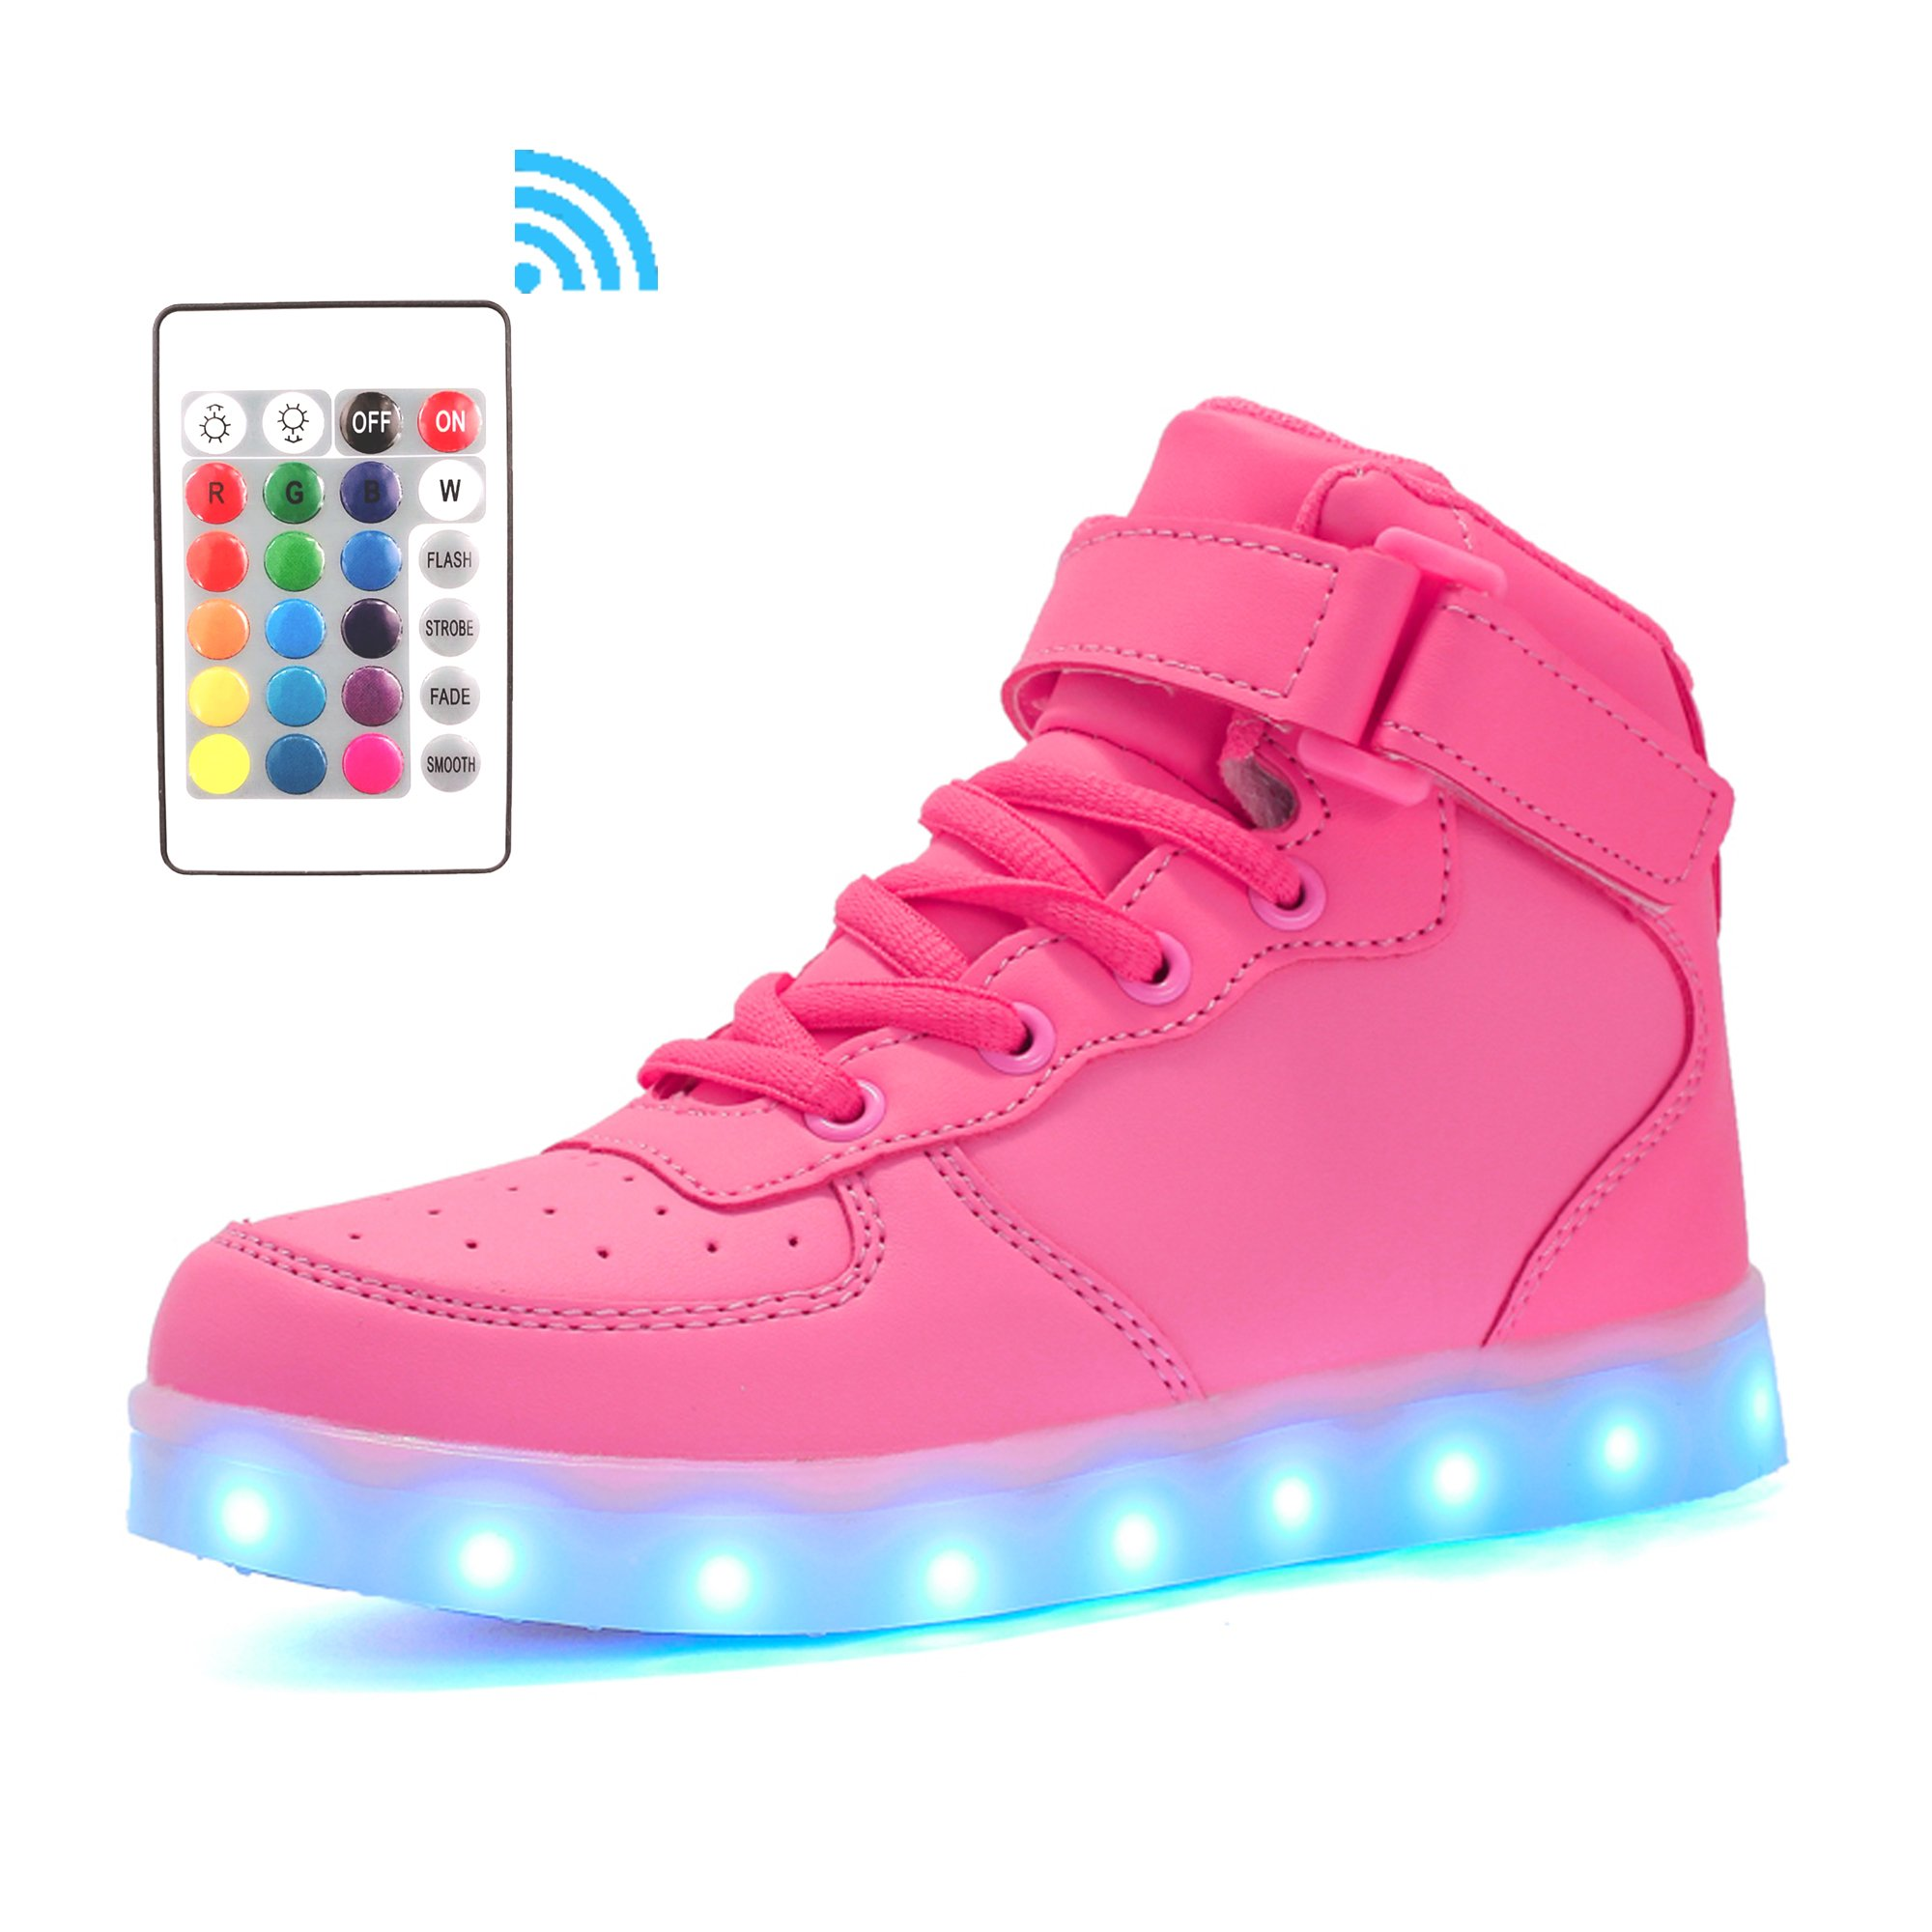 Voovix Kids LED Light up Shoes High-top Flashing Sneakers with Remote Control for Boys and Girls(Pink,US11.5/CN30)